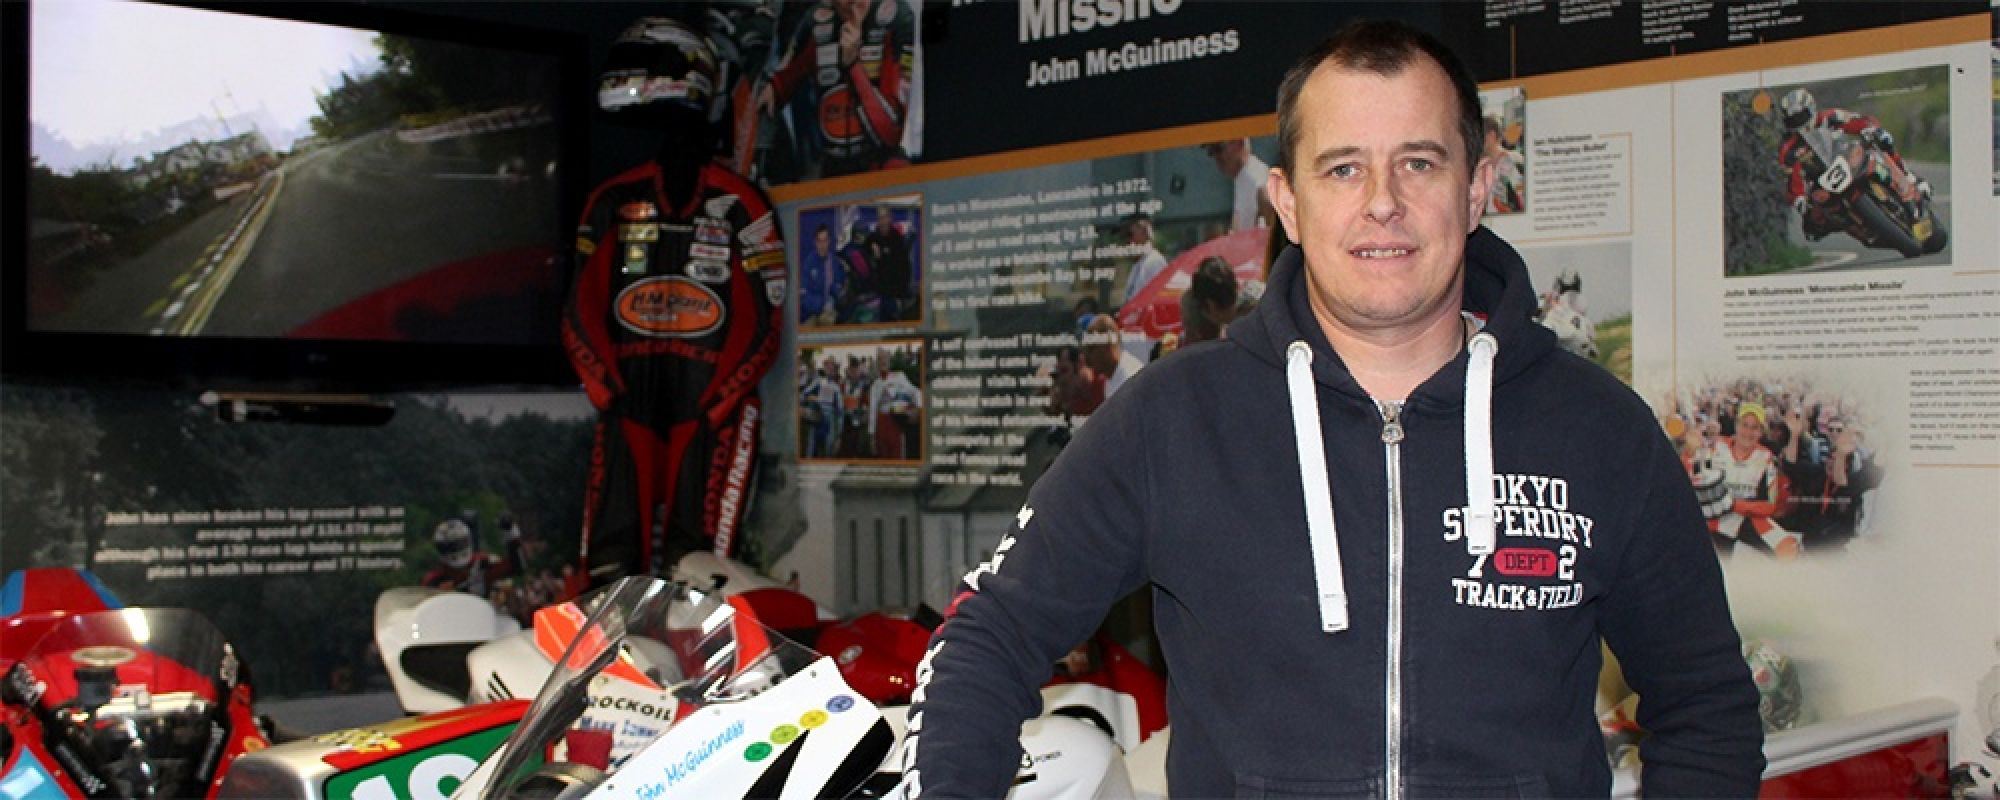 John McGuiness in front of the Isle of Man TT exhibition